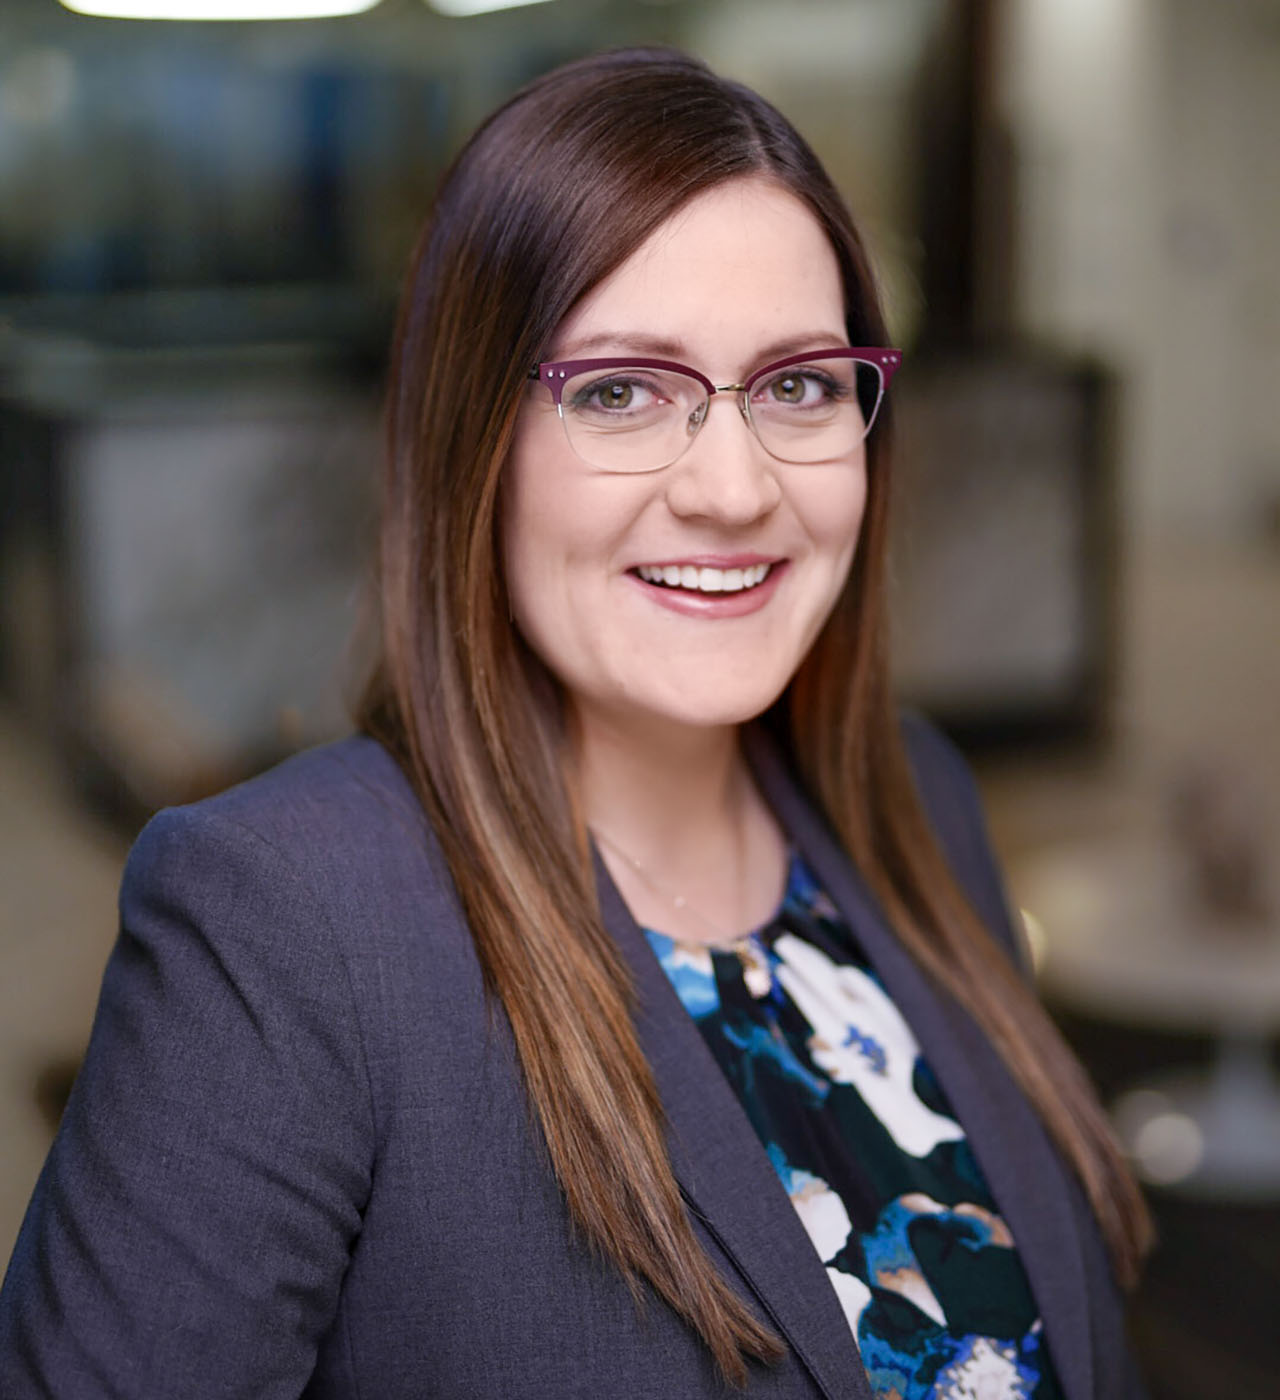 Jessica E. Nixon is a Partner at Kanuka Thuringer LLP